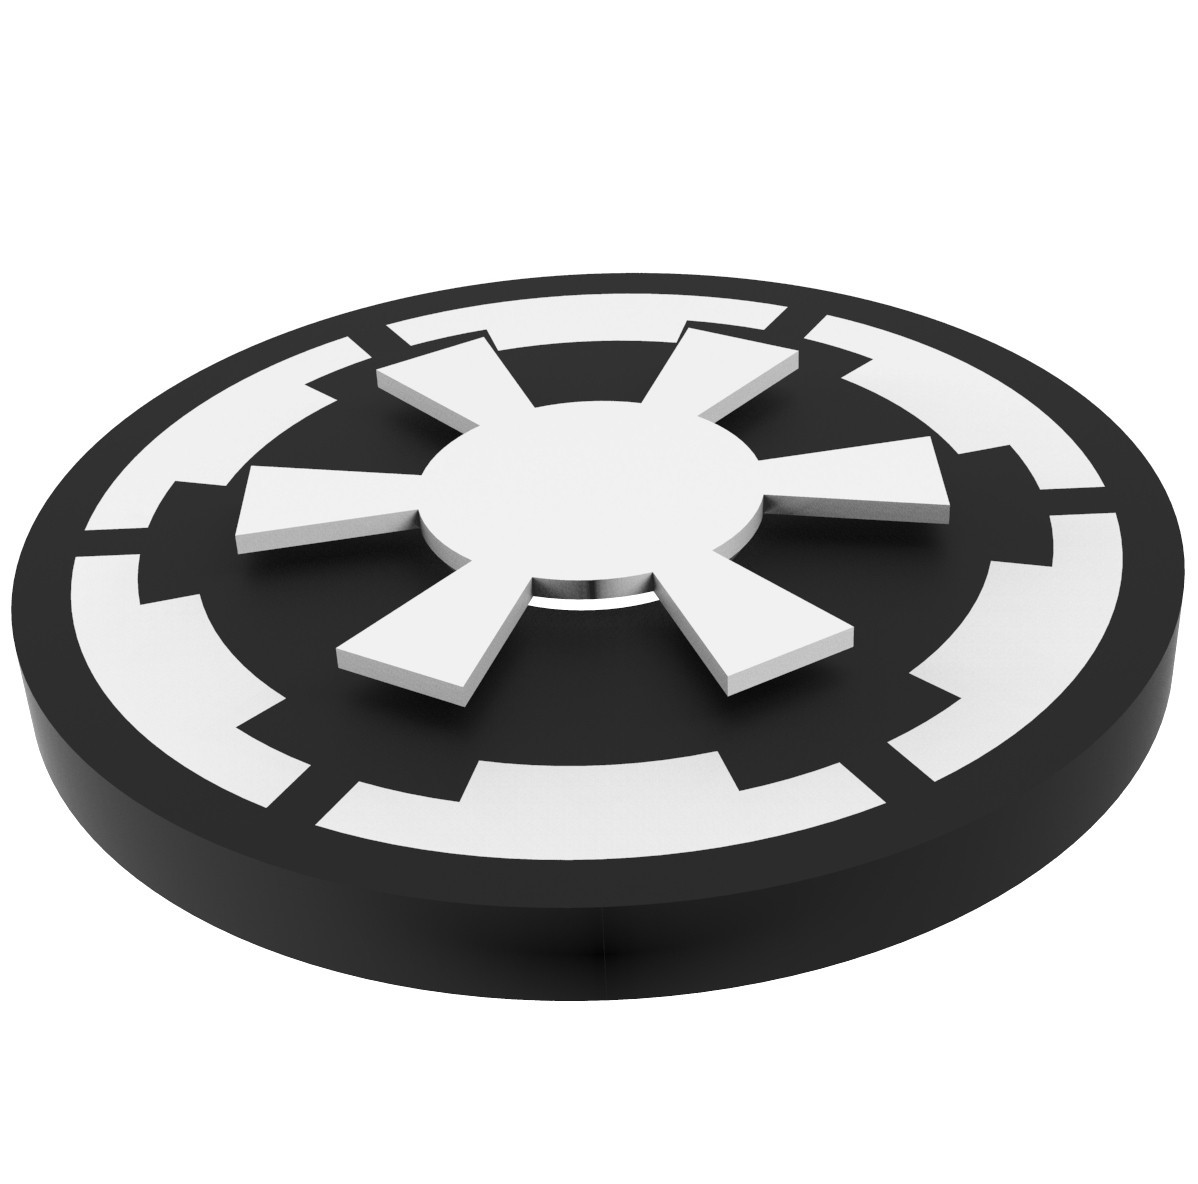 SW2.jpg Download STL file Hand Spinner Star Wars • 3D printable template, Guich